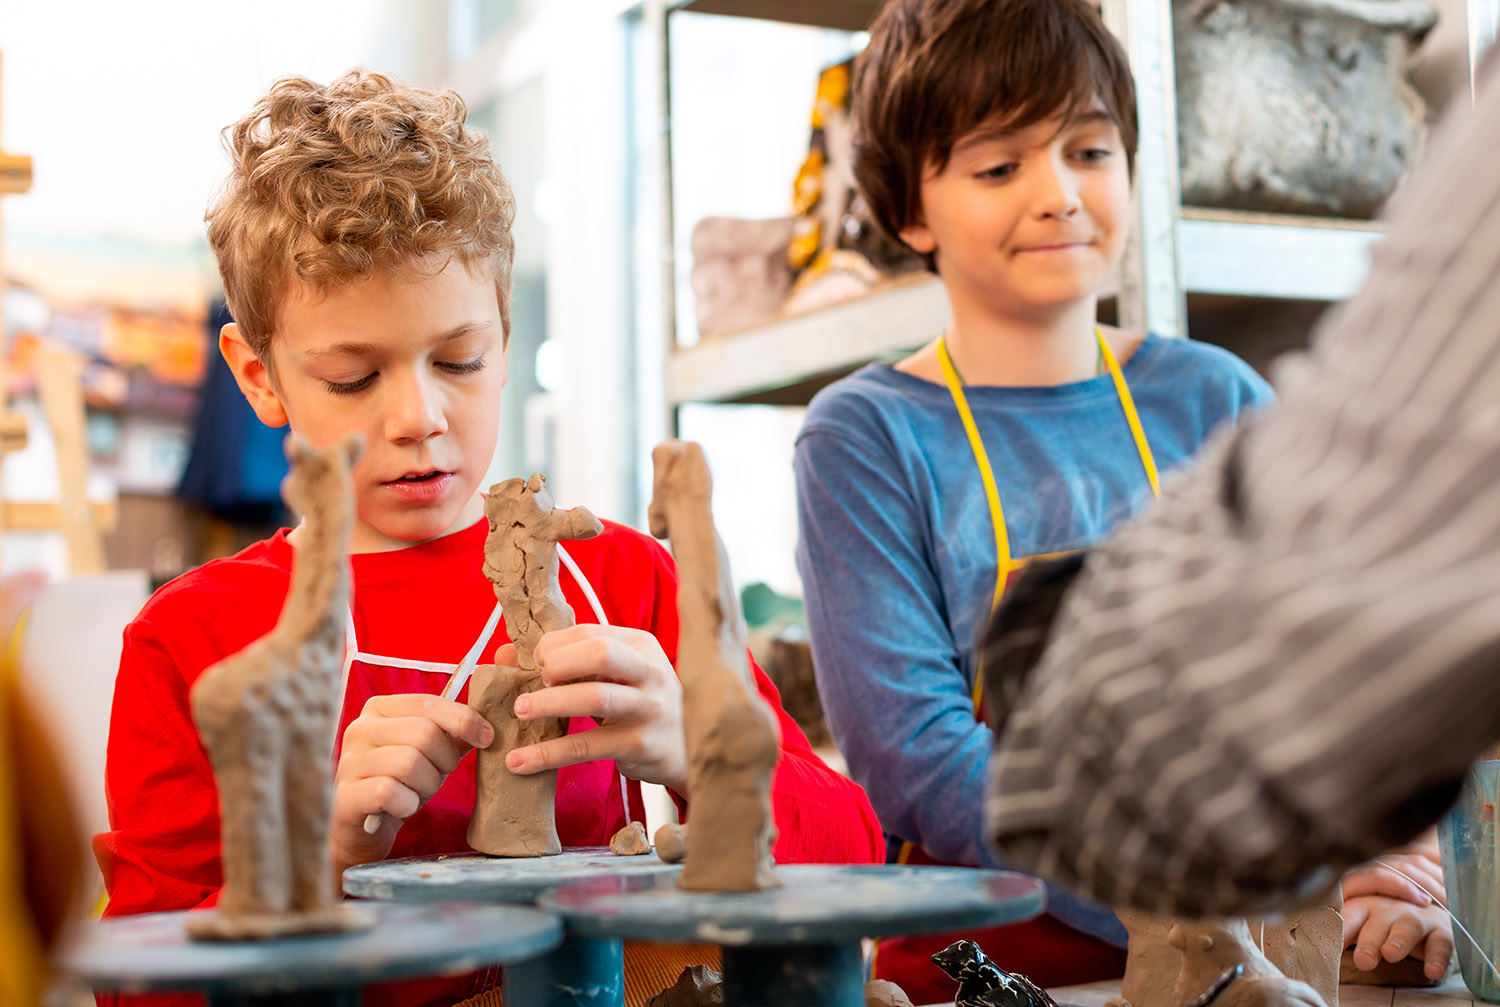 Two talented boys. Two talented boy modeling clay animals at the art lesson near their teacher